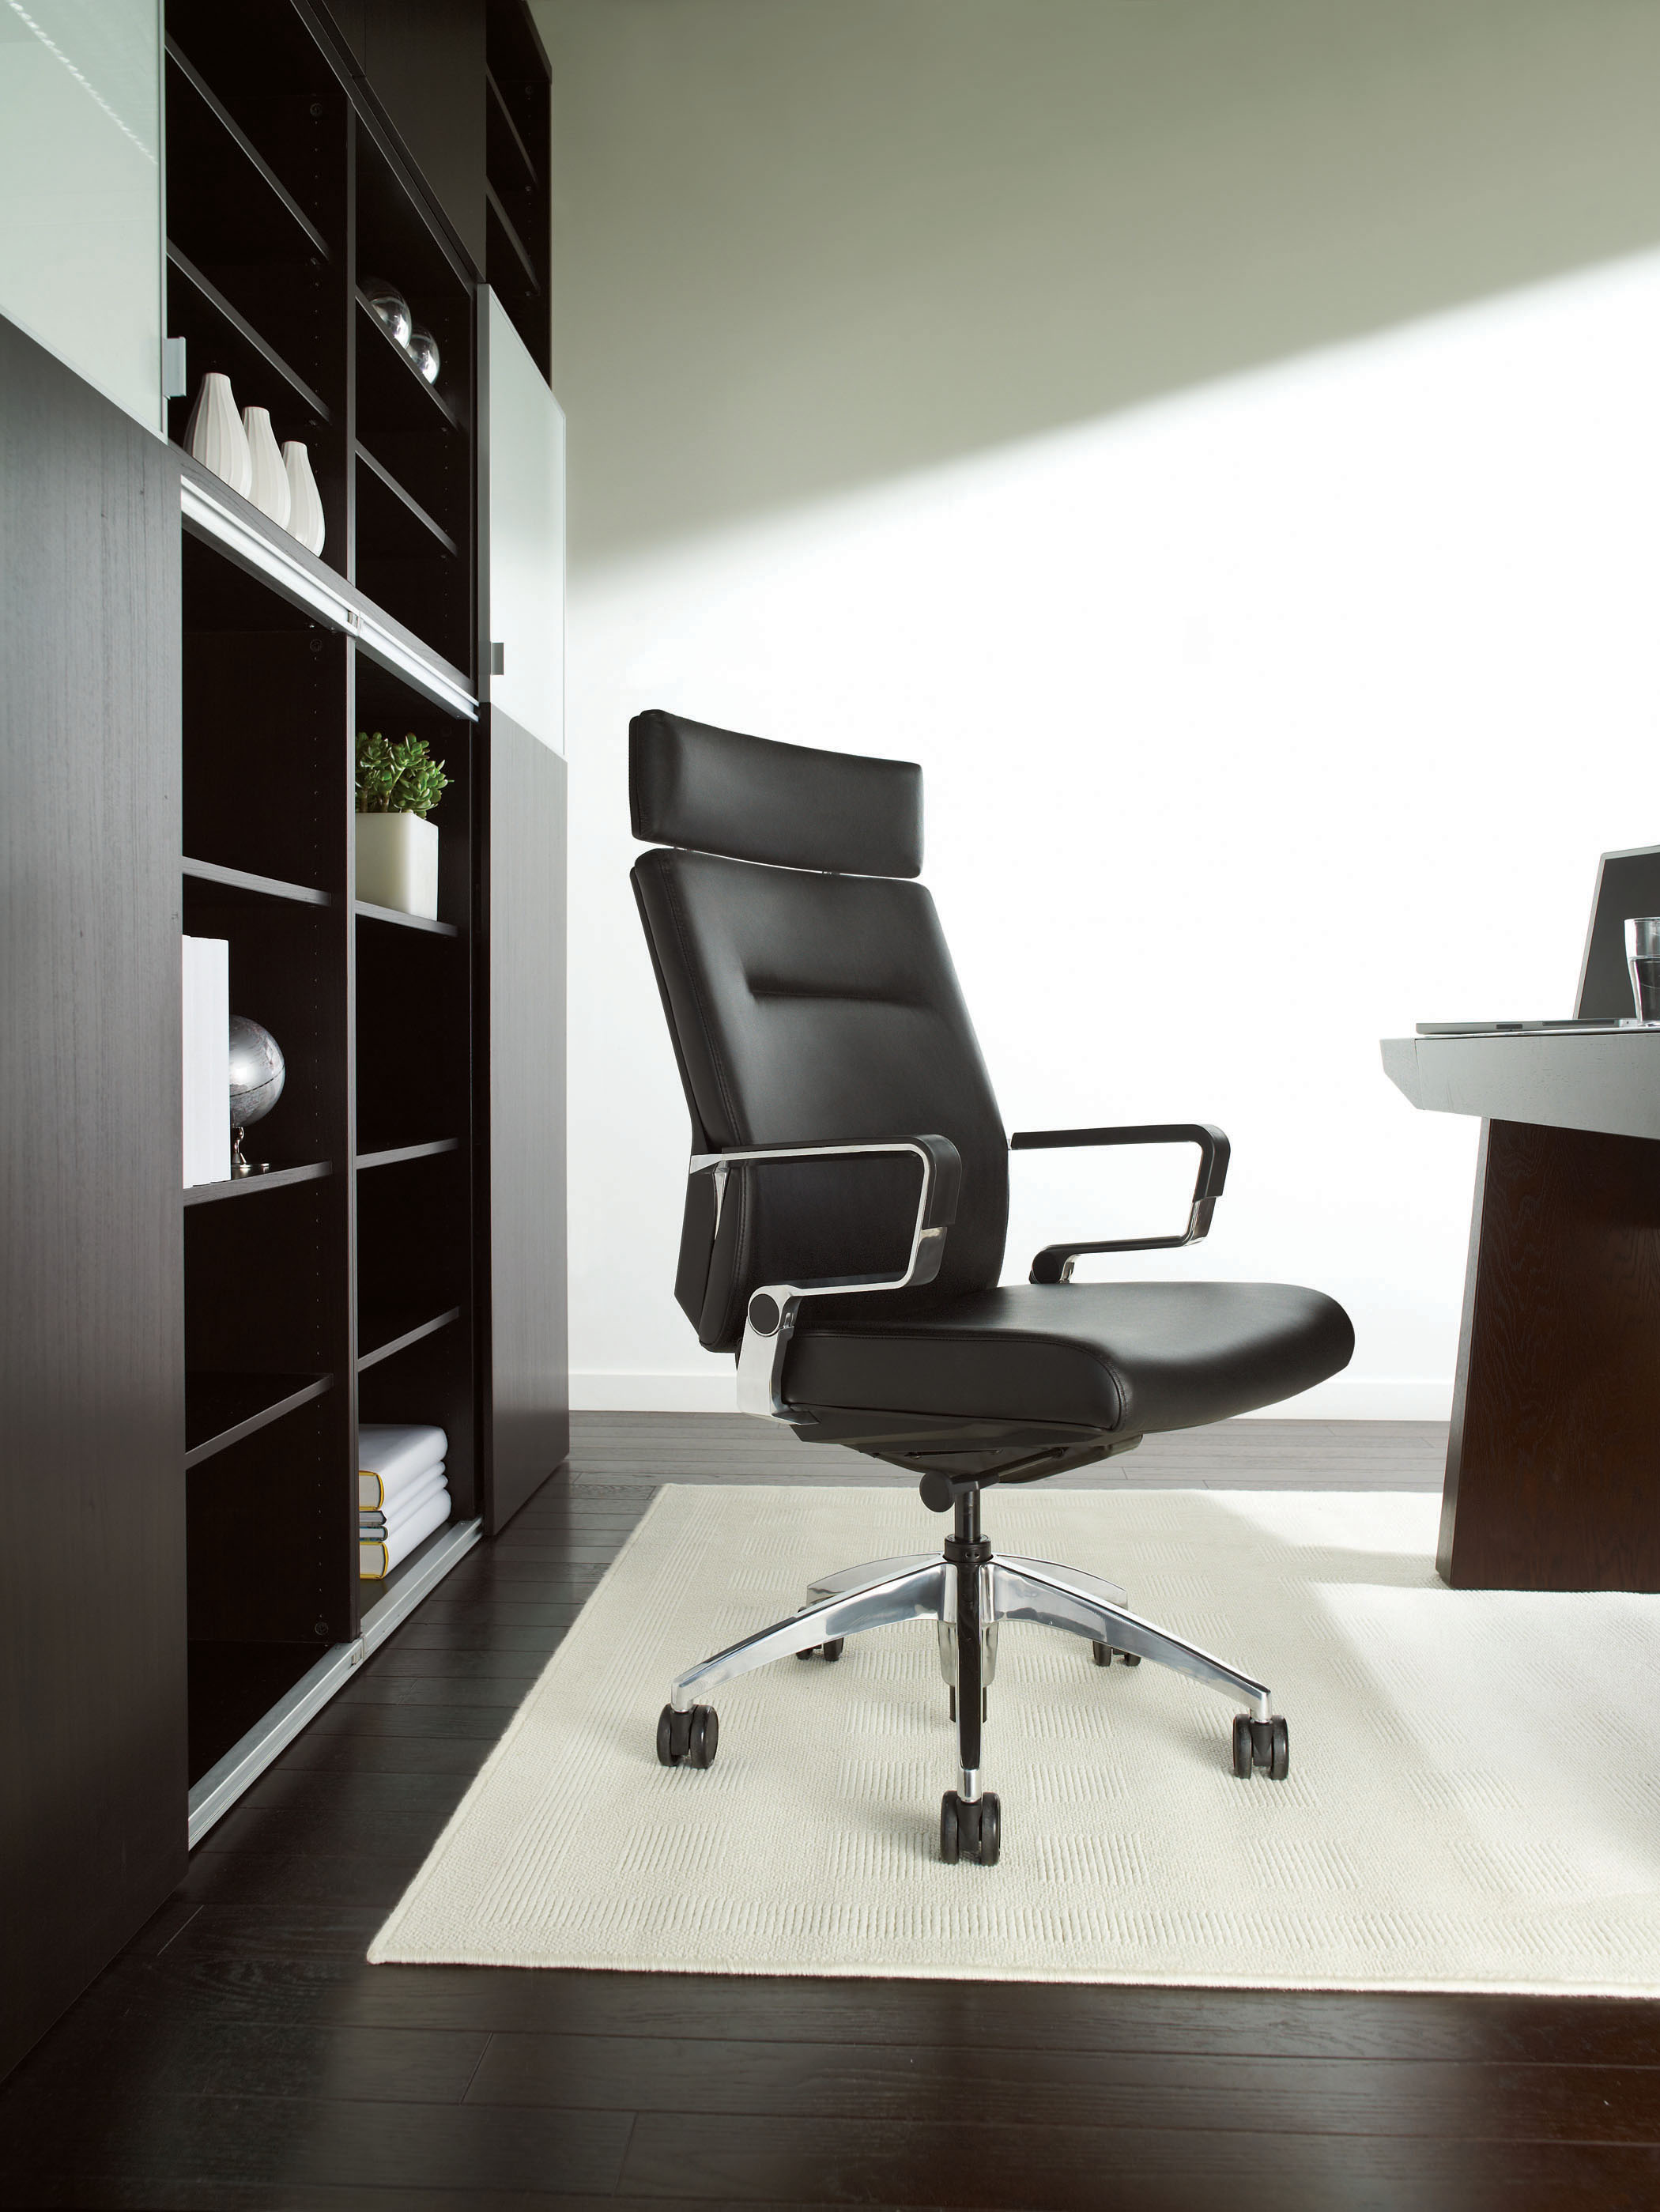 Ray was awarded a Silver at NeoCon 2009, and a GOOD DESIGN award (2009).